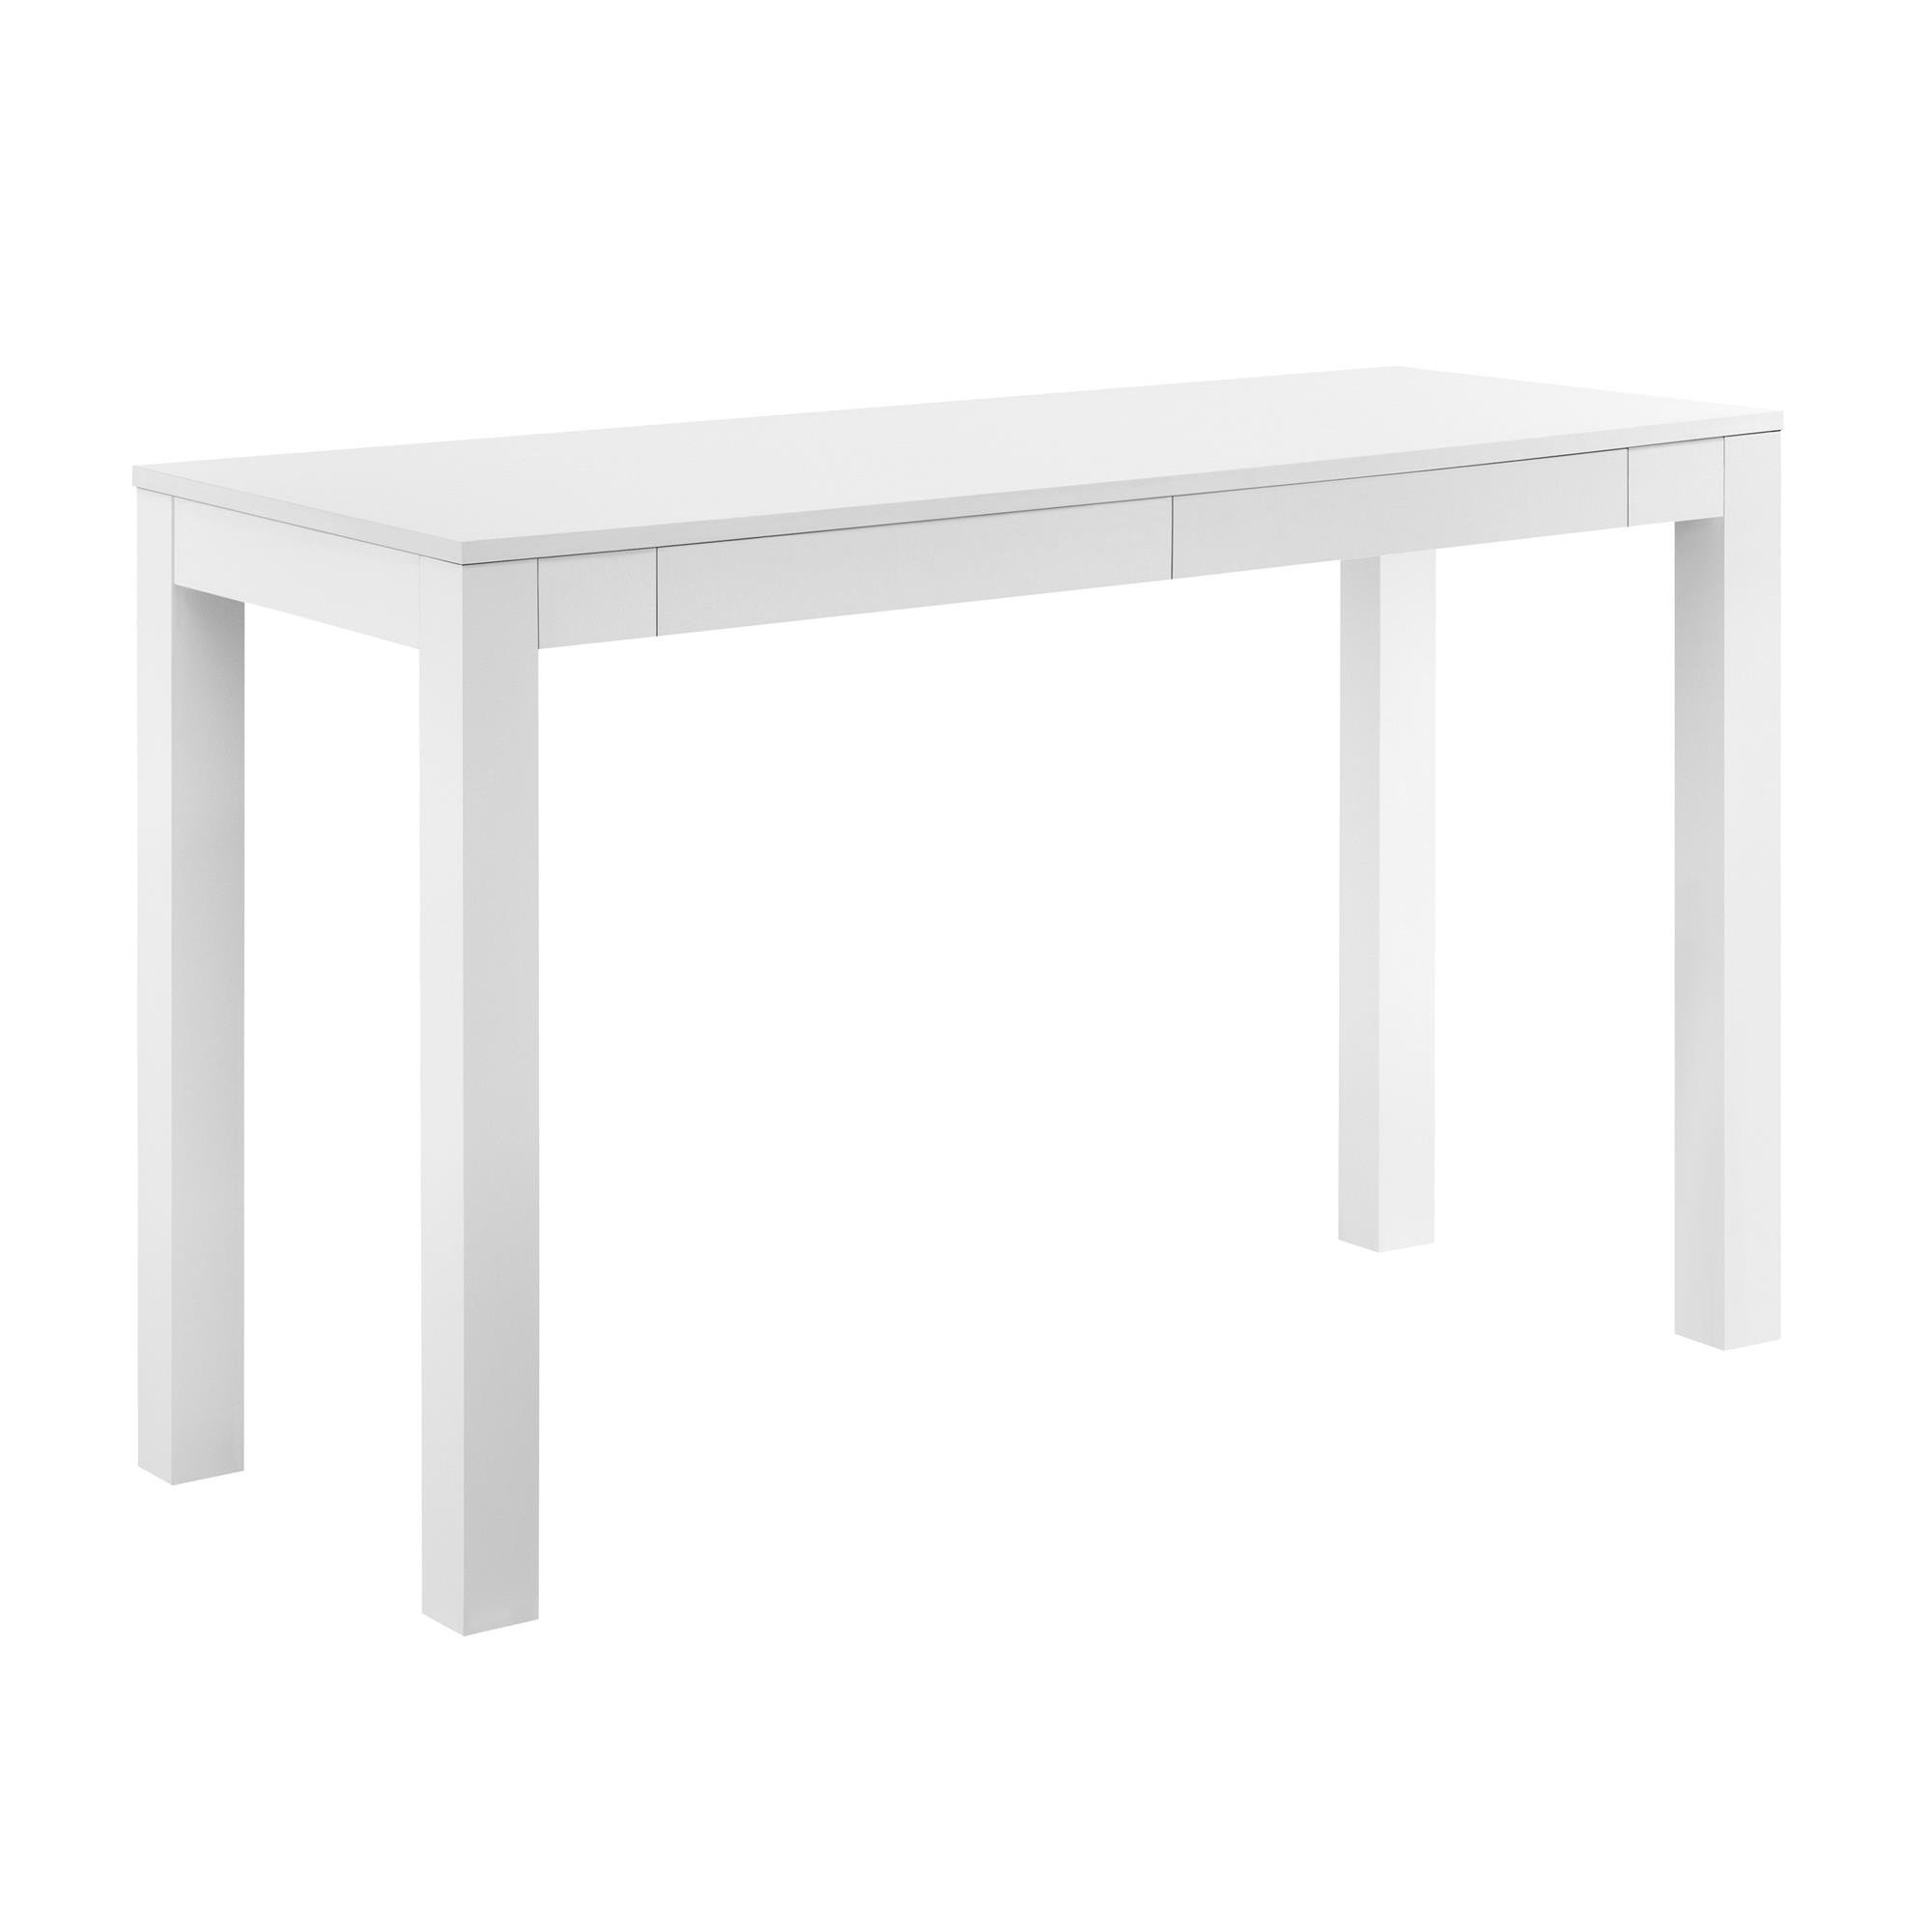 Ameriwood Home  Parsons Xl Desk with 2 Drawers, White by Ameriwood Home